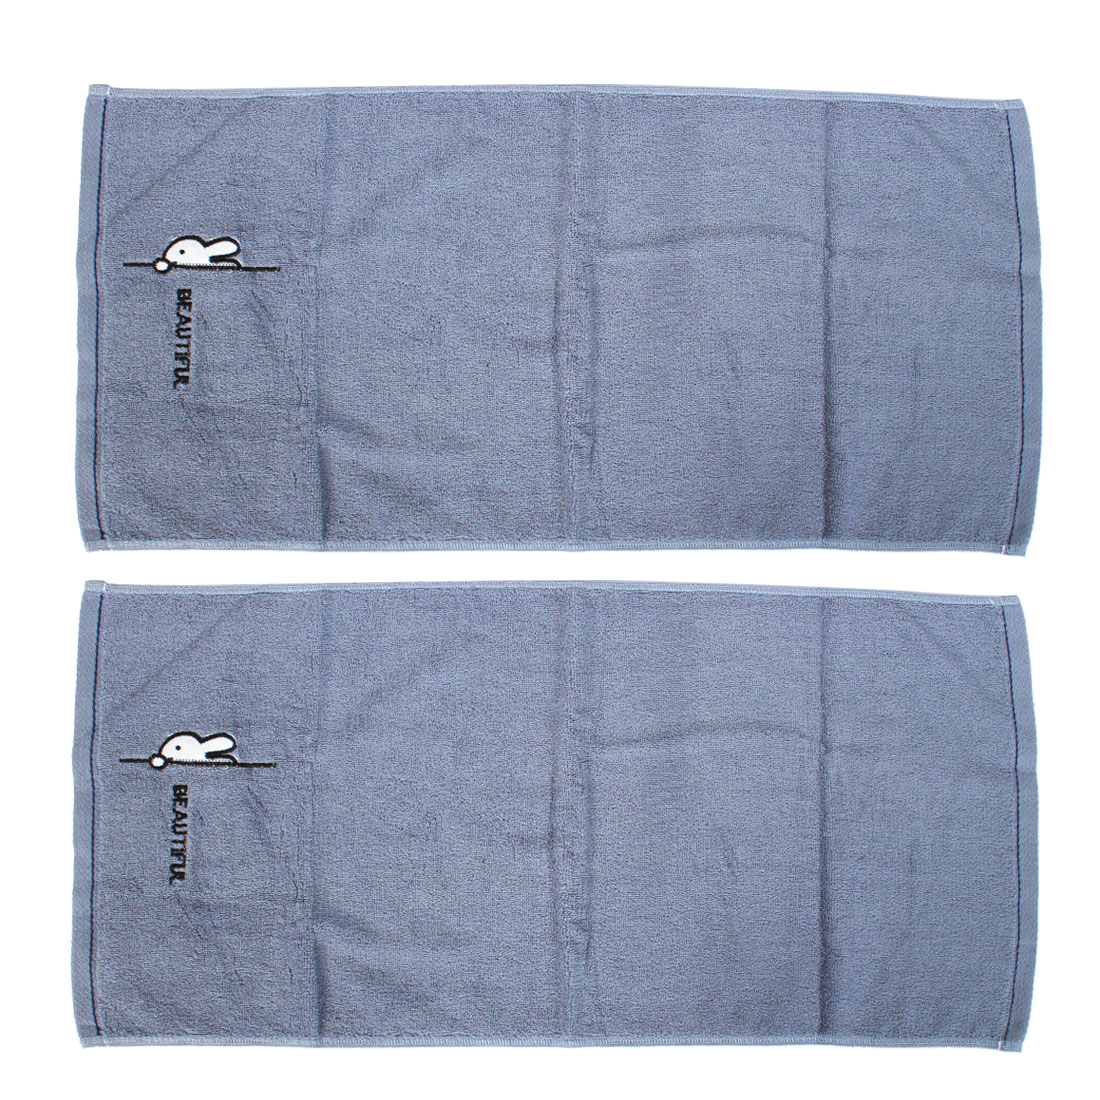 Home Beach Travel Portable Shower Face Washing Terry Towel Washcloths Gray 2pcs